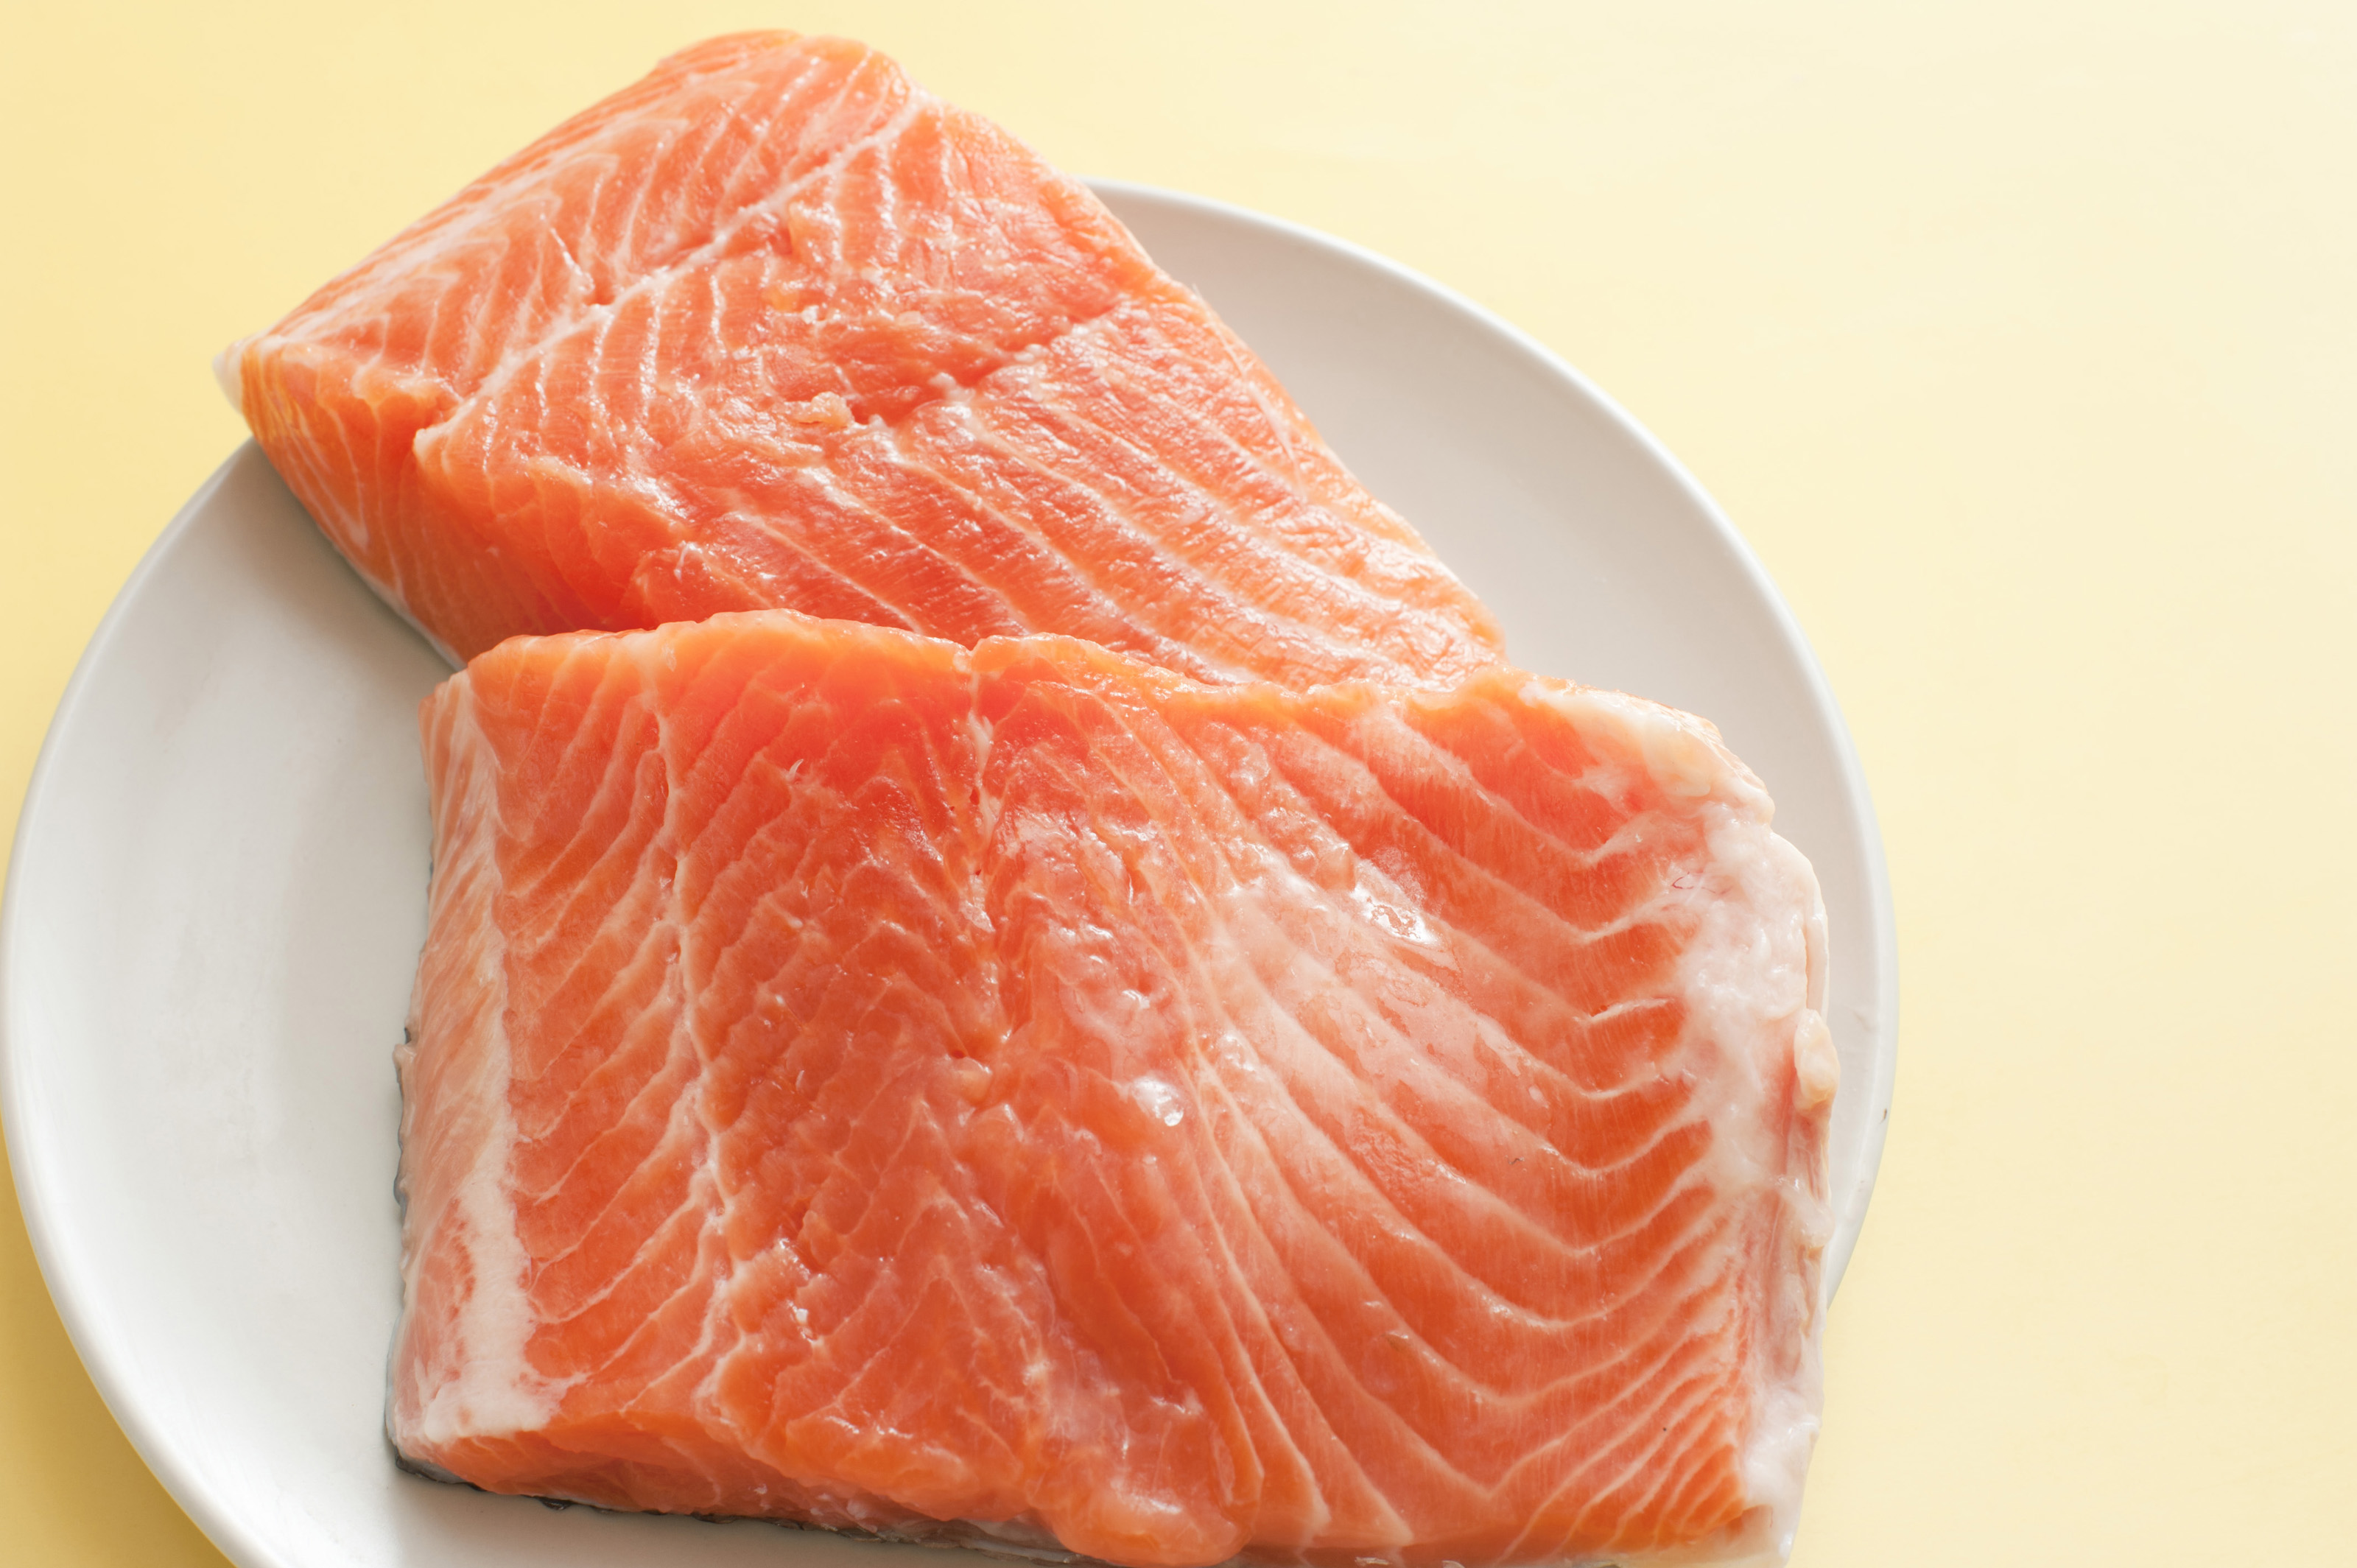 Smoked salmon fish meat on white plate 8957 stockarch for Is fish meat